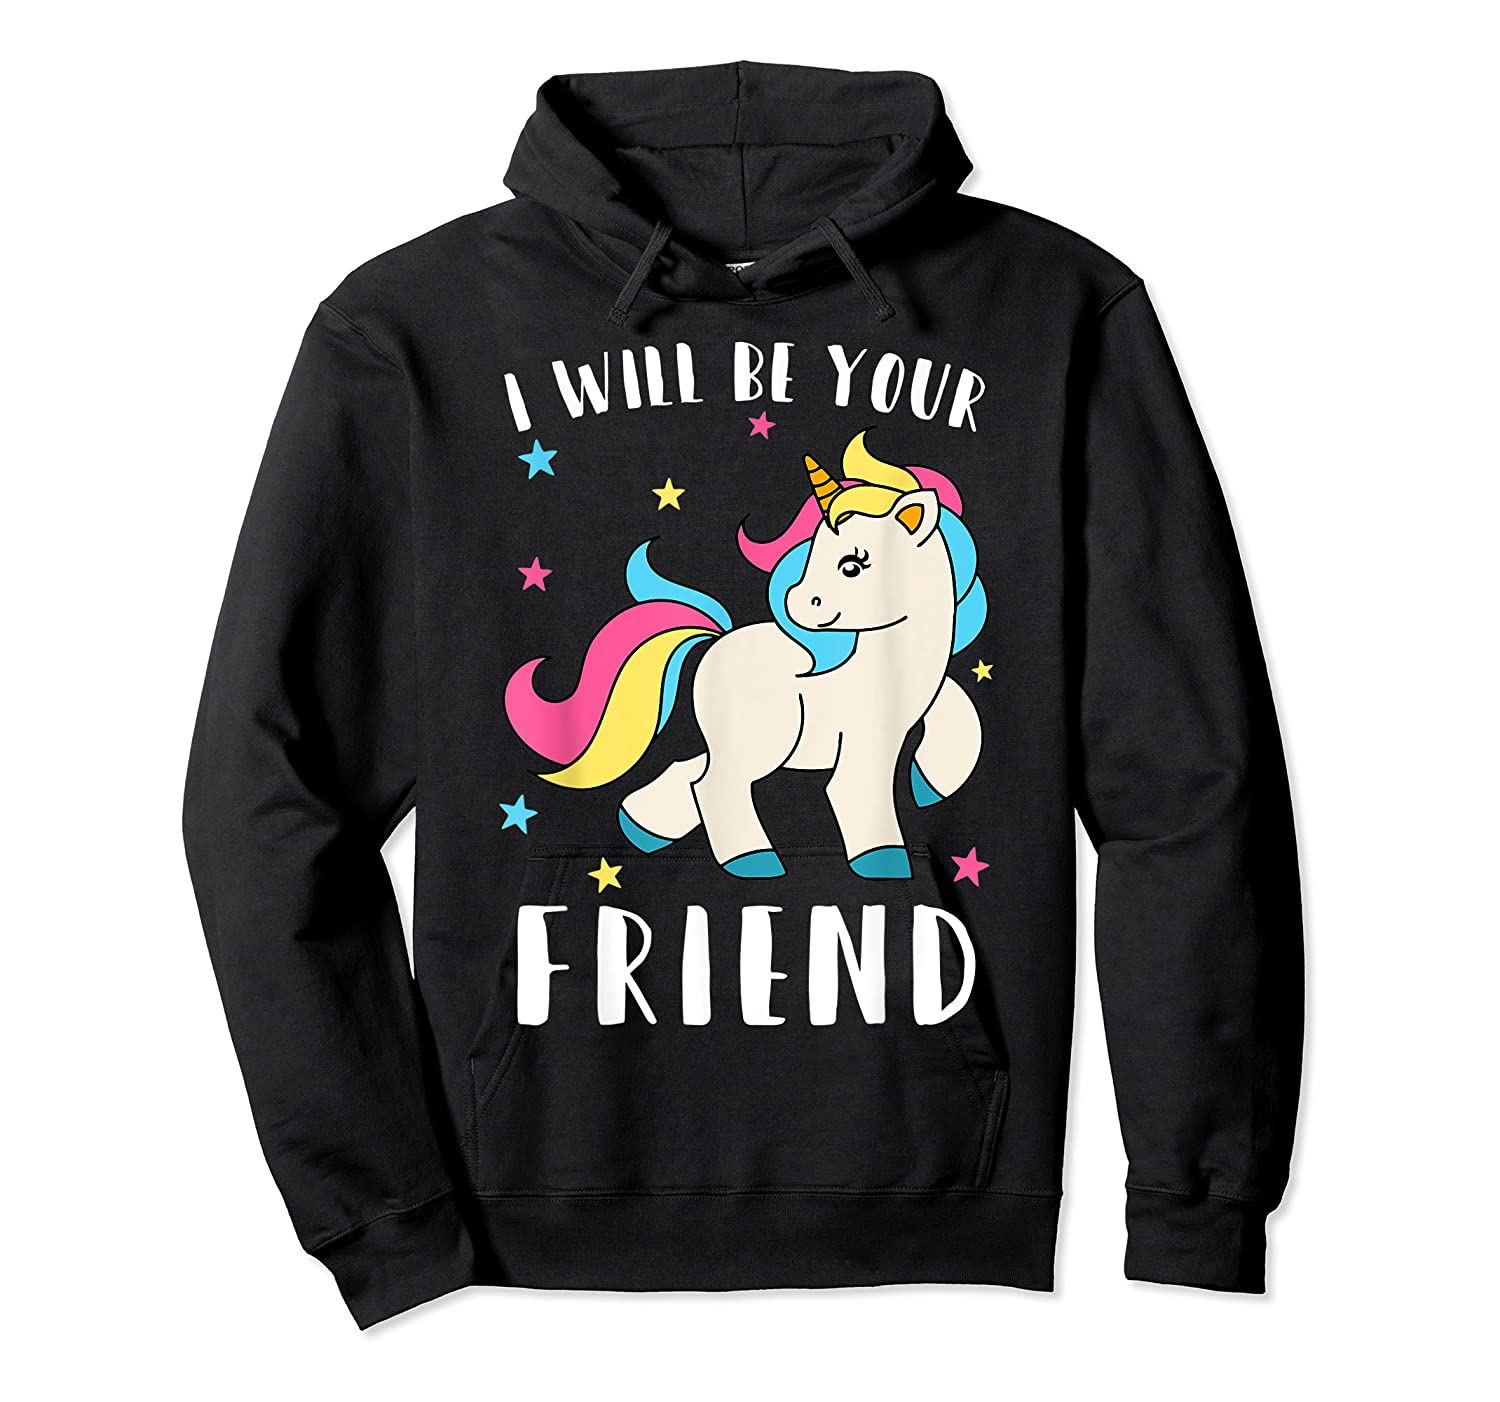 I Will Be Your Friend Shirt - Stop Bullying Unicorn Tshirt Unisex Pullover Hoodie